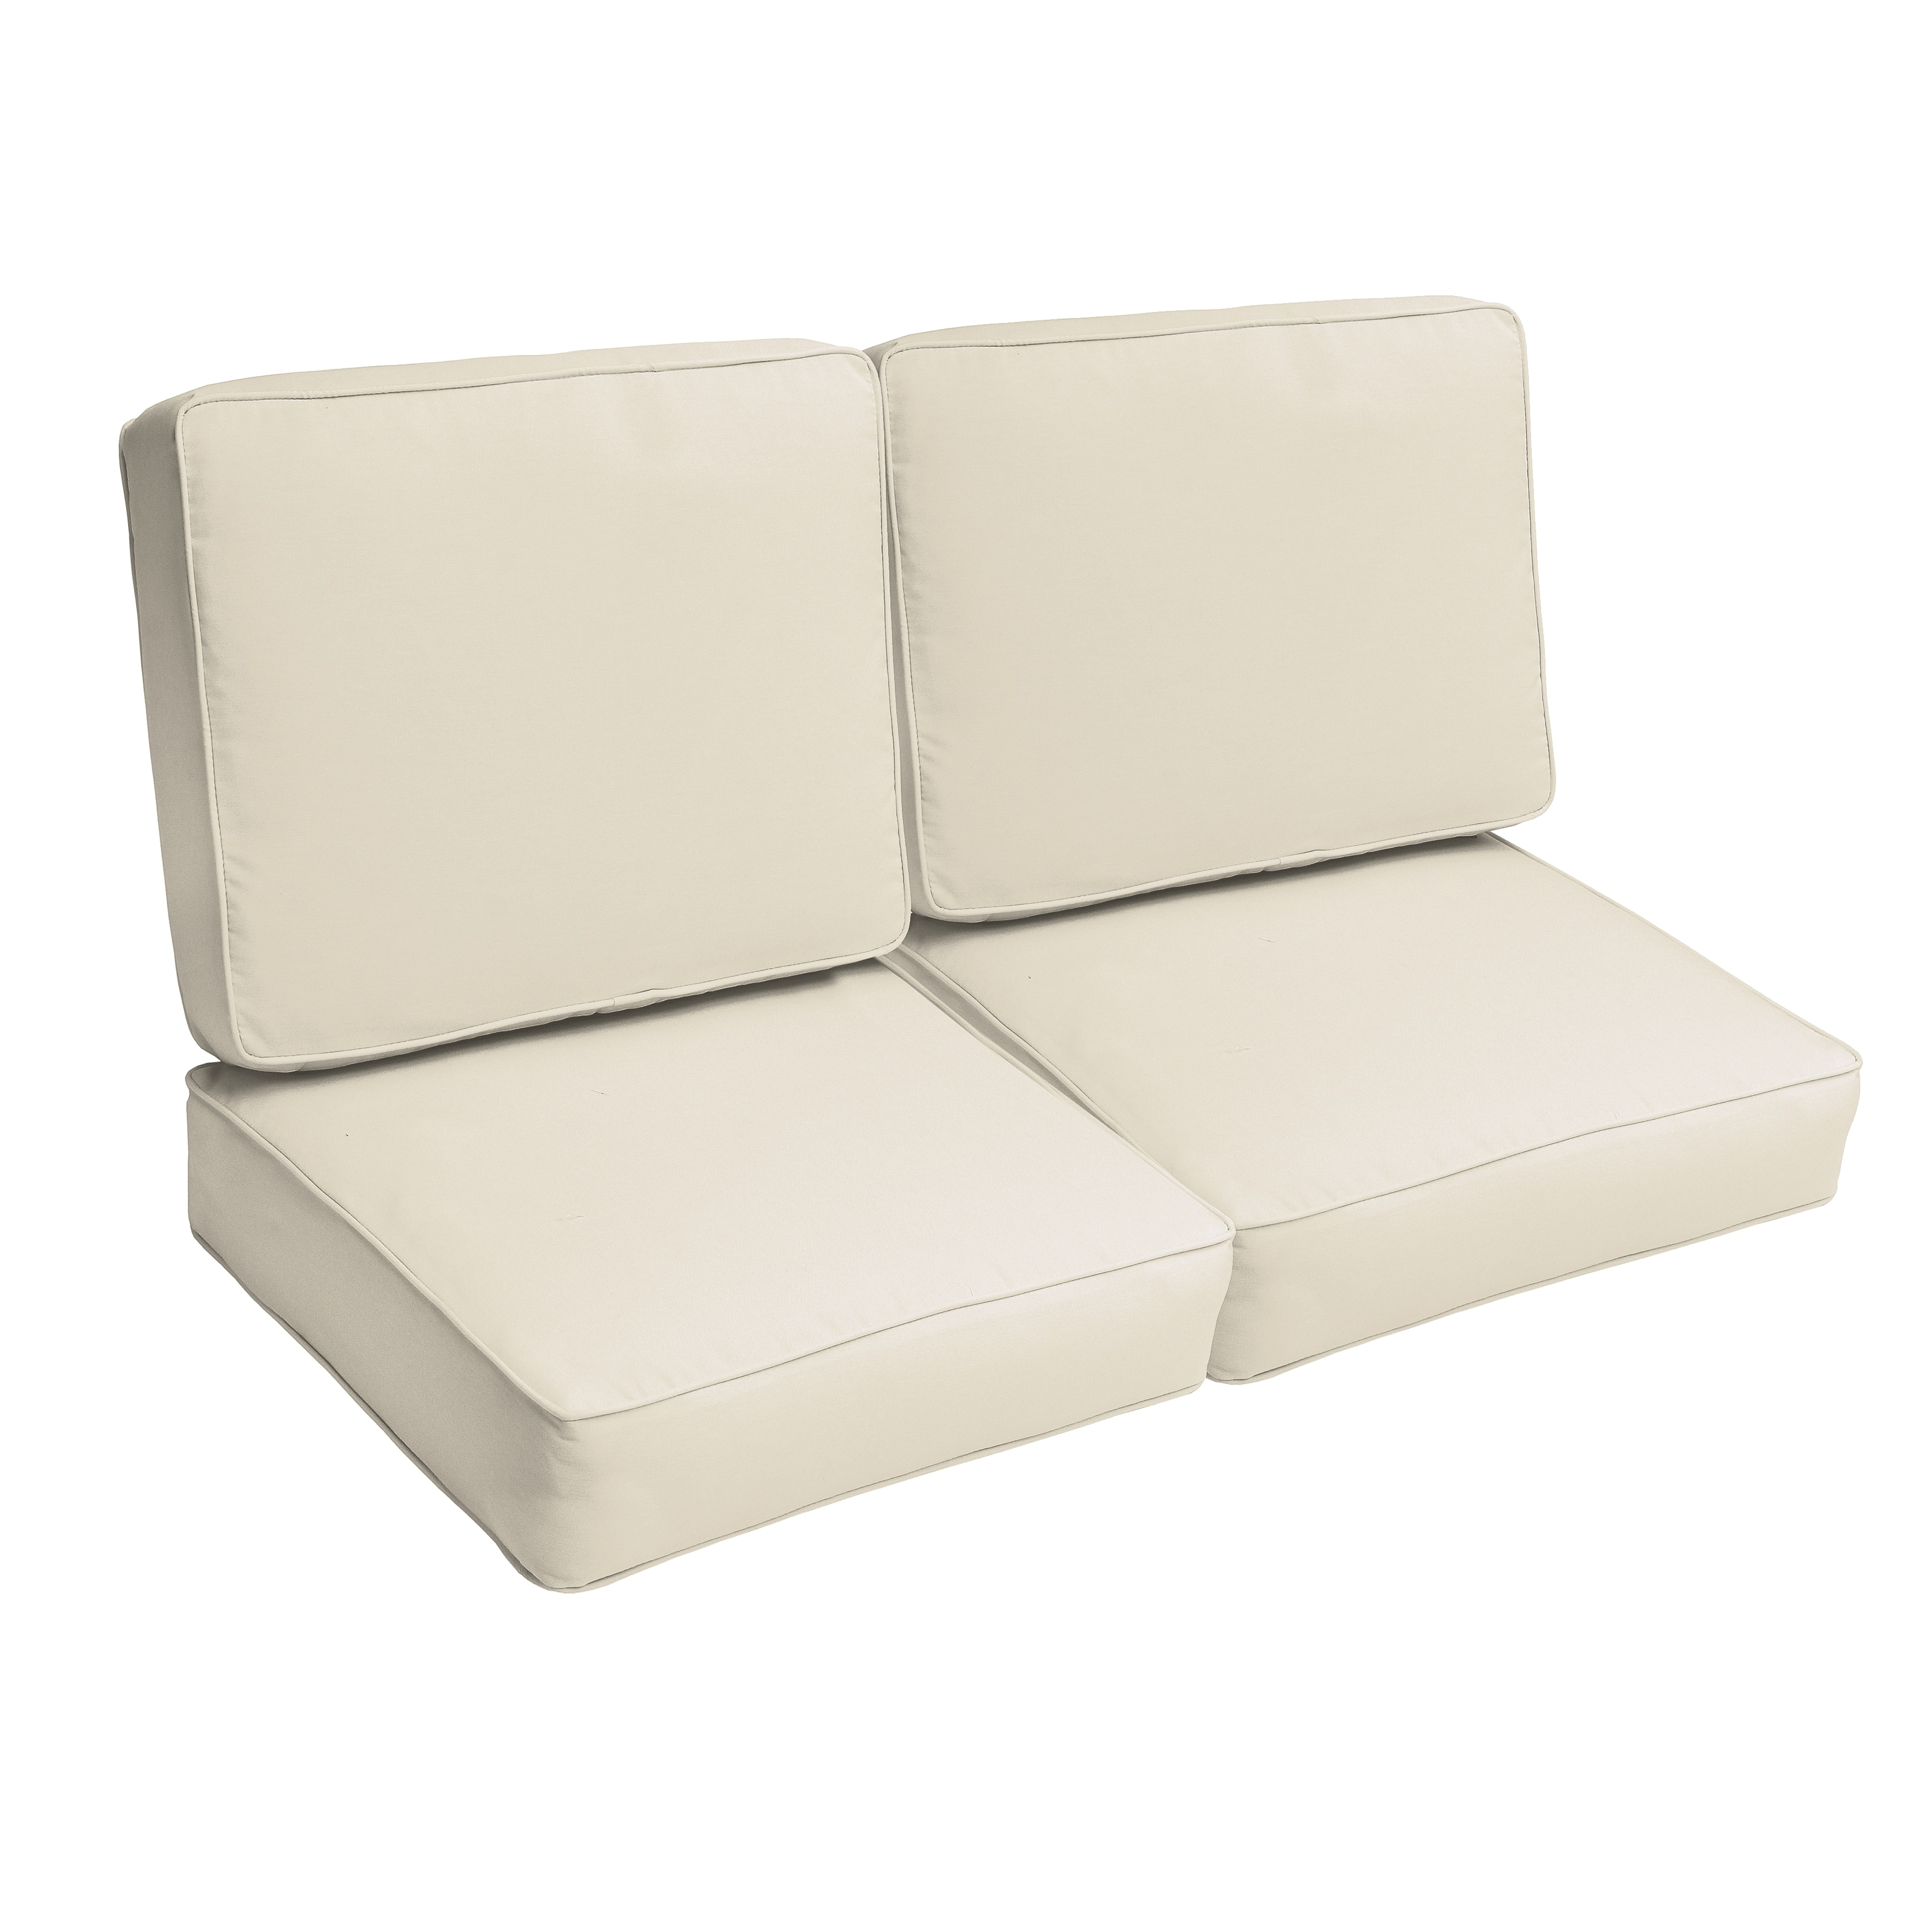 Shop Black Friday Deals On Sloane Ivory 47 Inch Indoor Outdoor Corded Loveseat Cushion Set Overstock 11390119